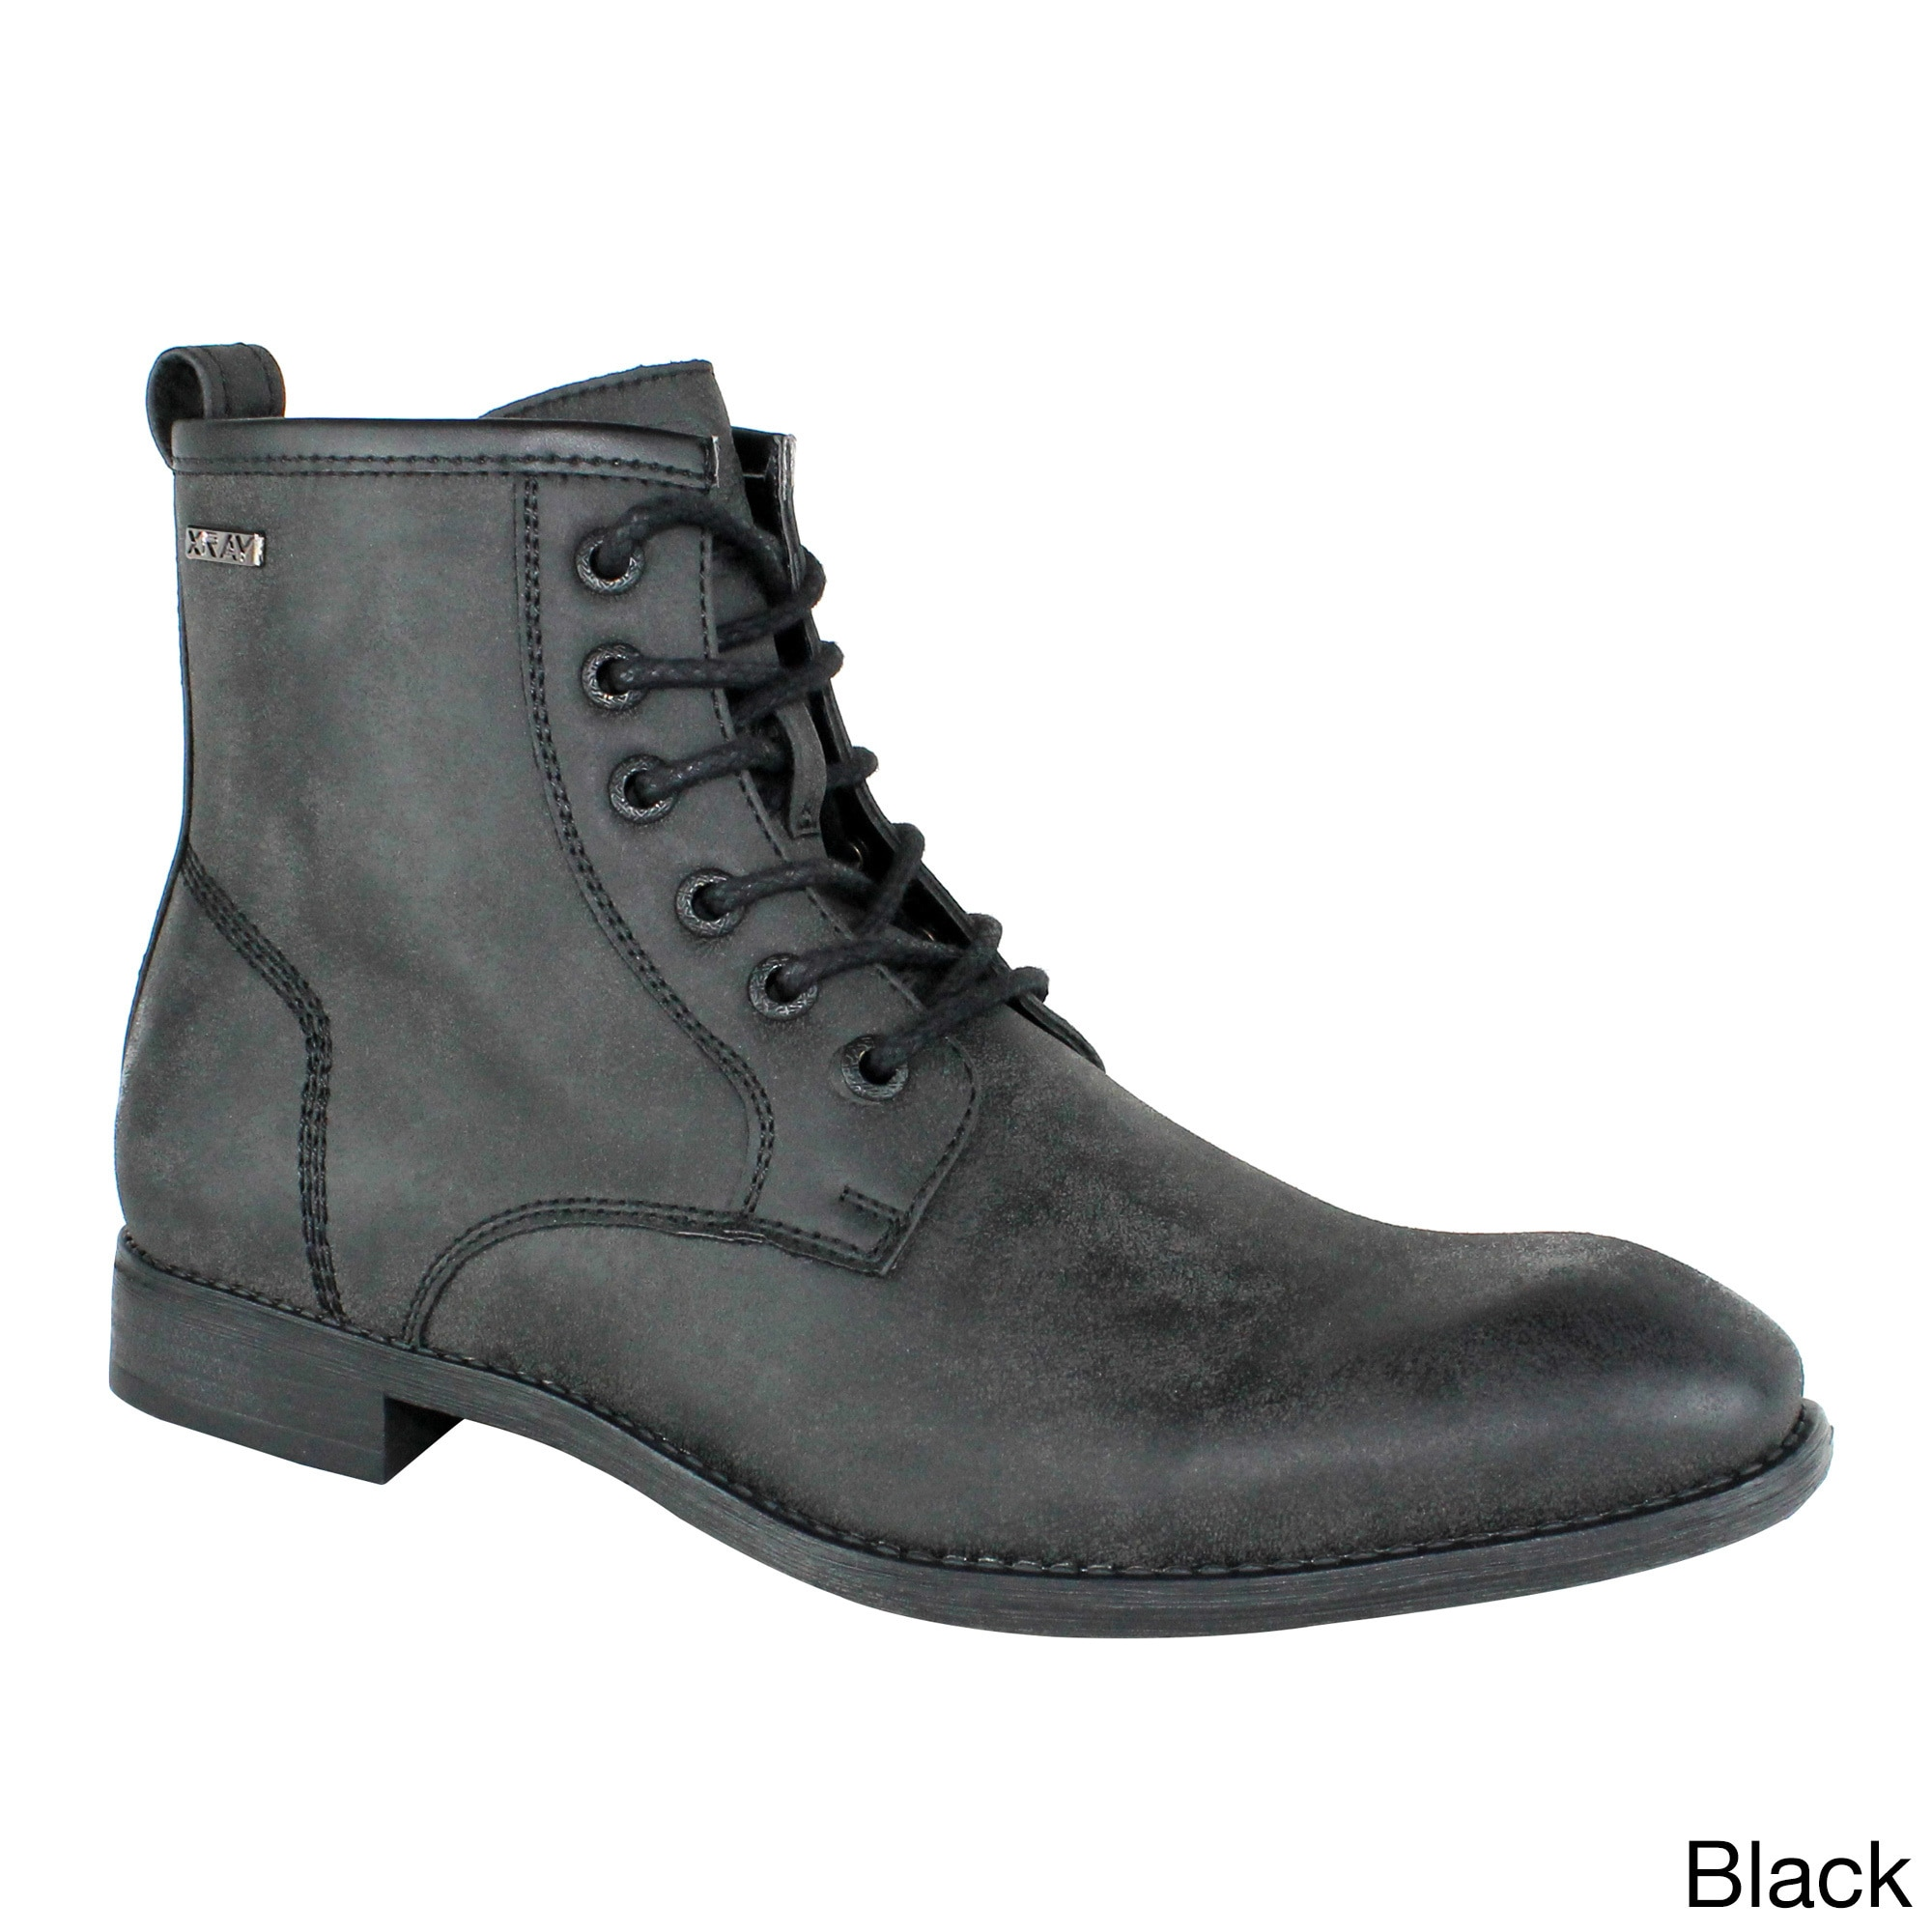 6e988e3c2dc7 Shop Men s Xray Exchange Plain Toe Boot - Free Shipping Today - Overstock -  10519692